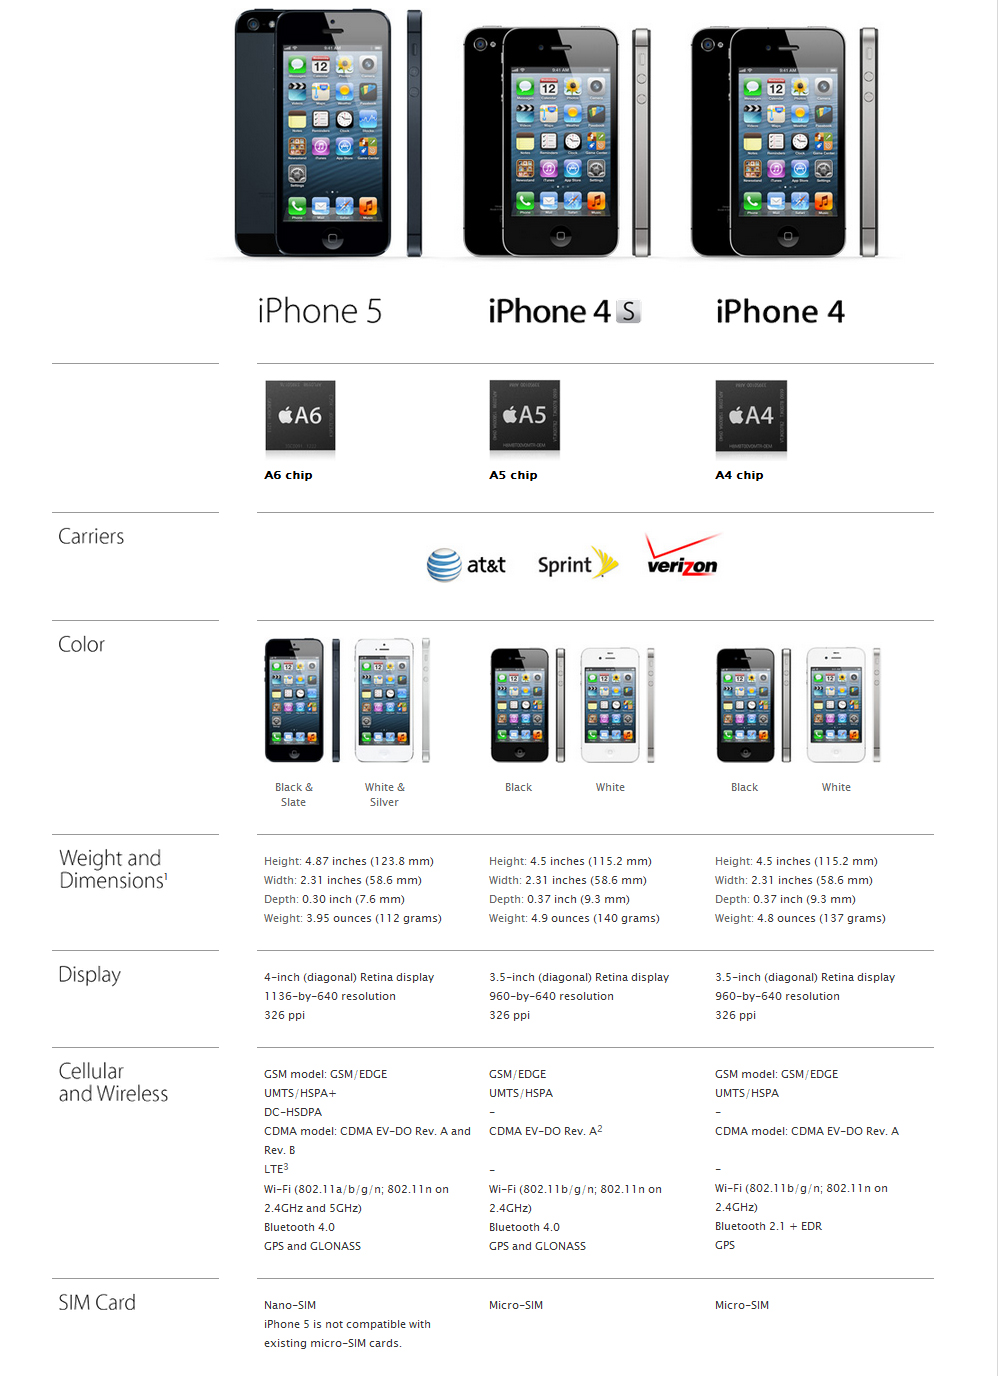 iphone 5 vs iphone 4s vs iphone 4 infographie info magazine. Black Bedroom Furniture Sets. Home Design Ideas